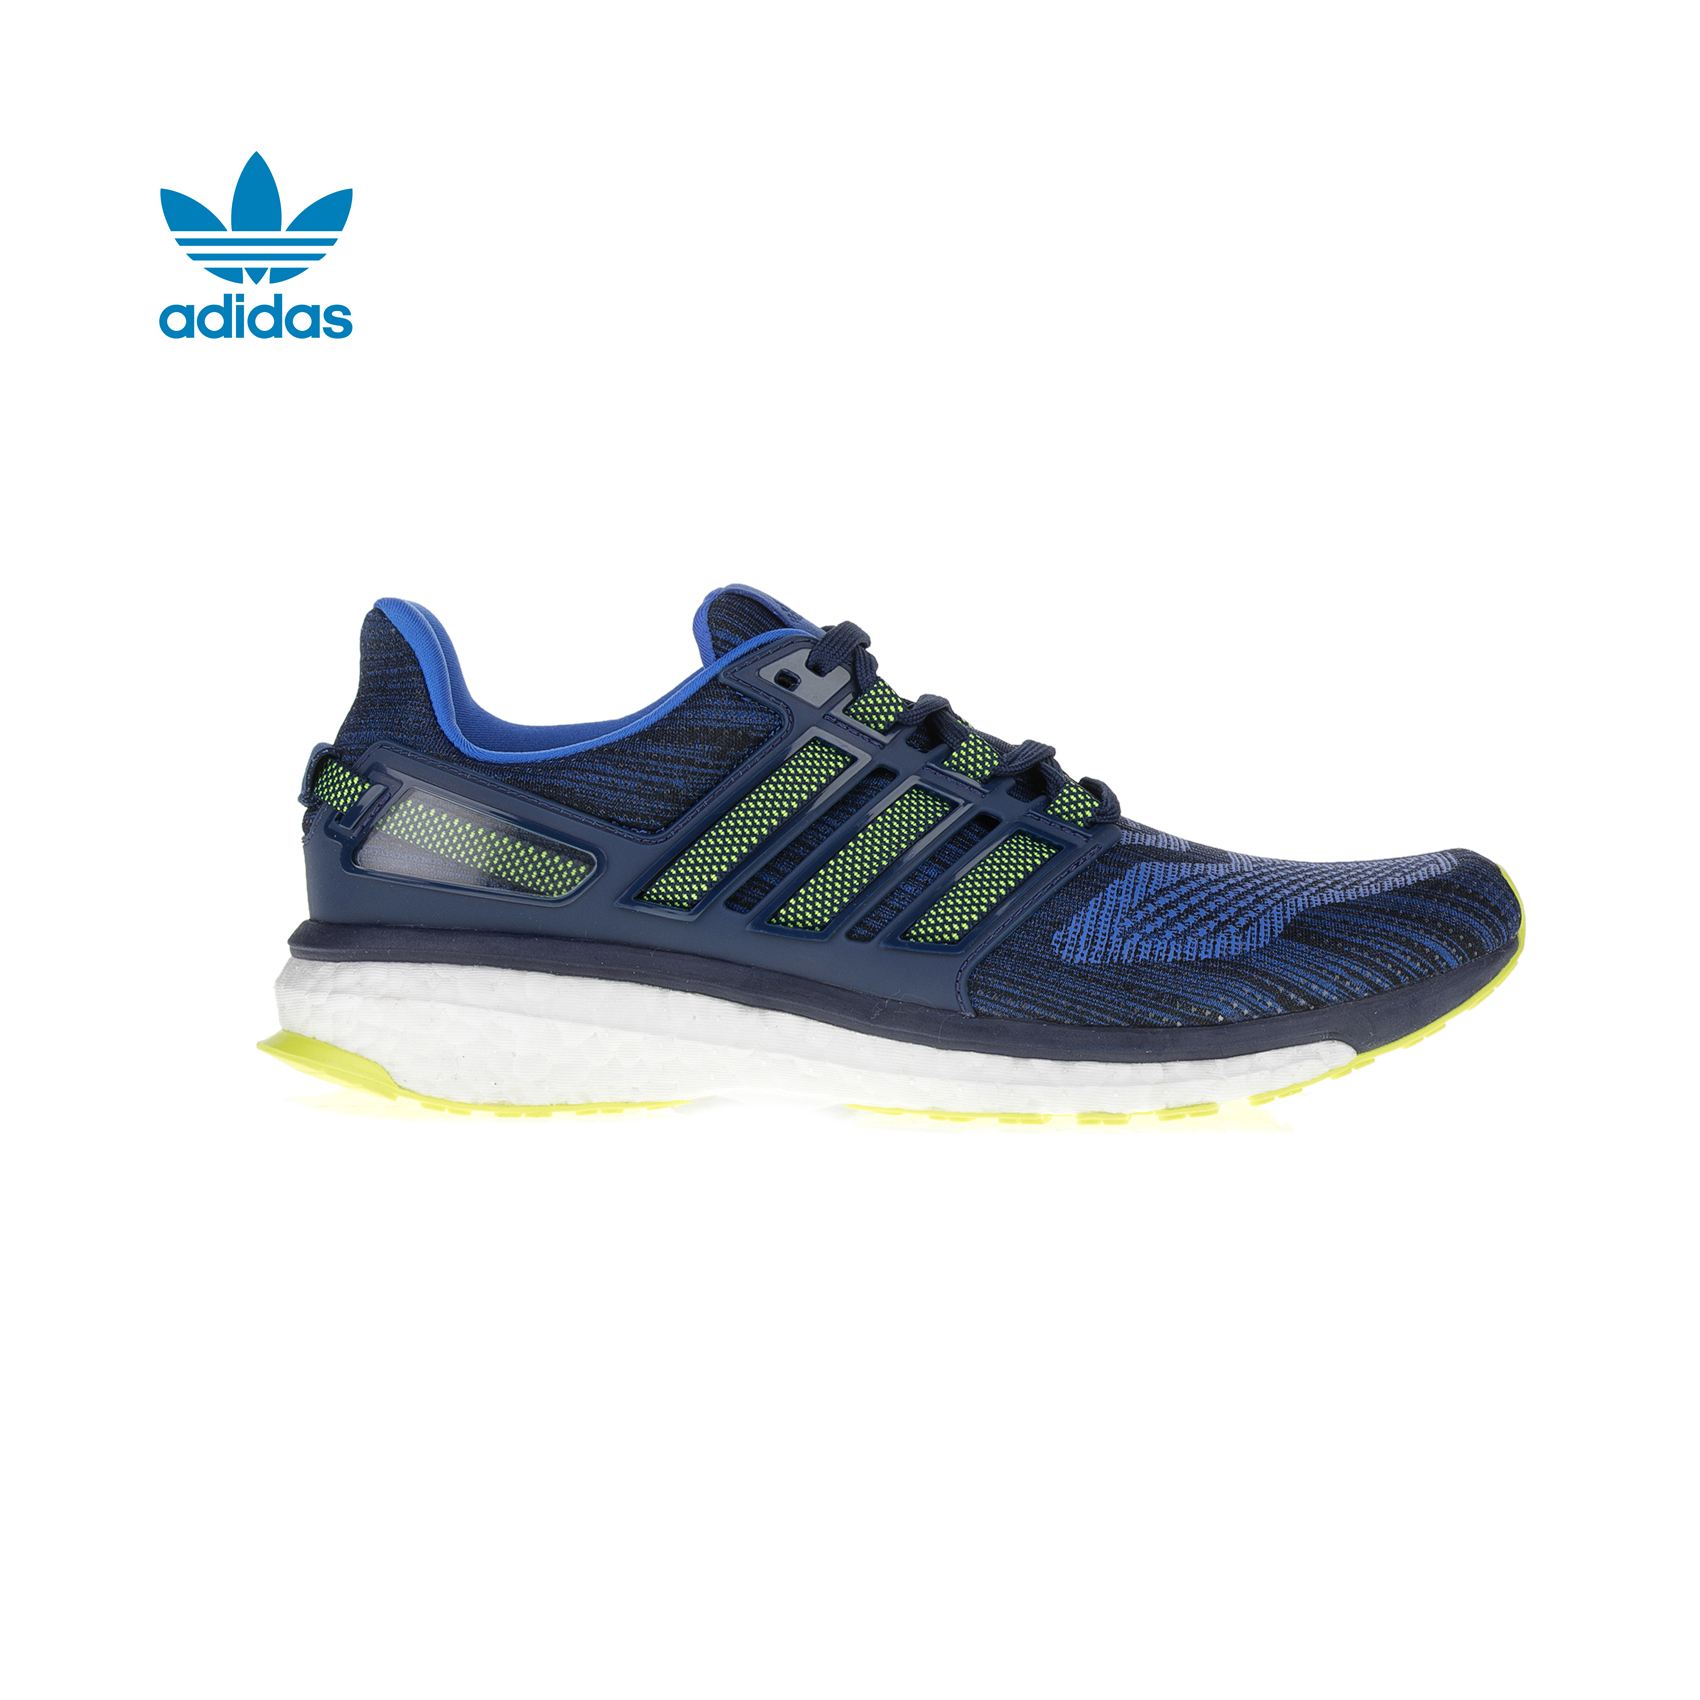 ADIDAS – BB5787 energy boost 3 m RUNNING ΥΠΟΔΗΜΑ